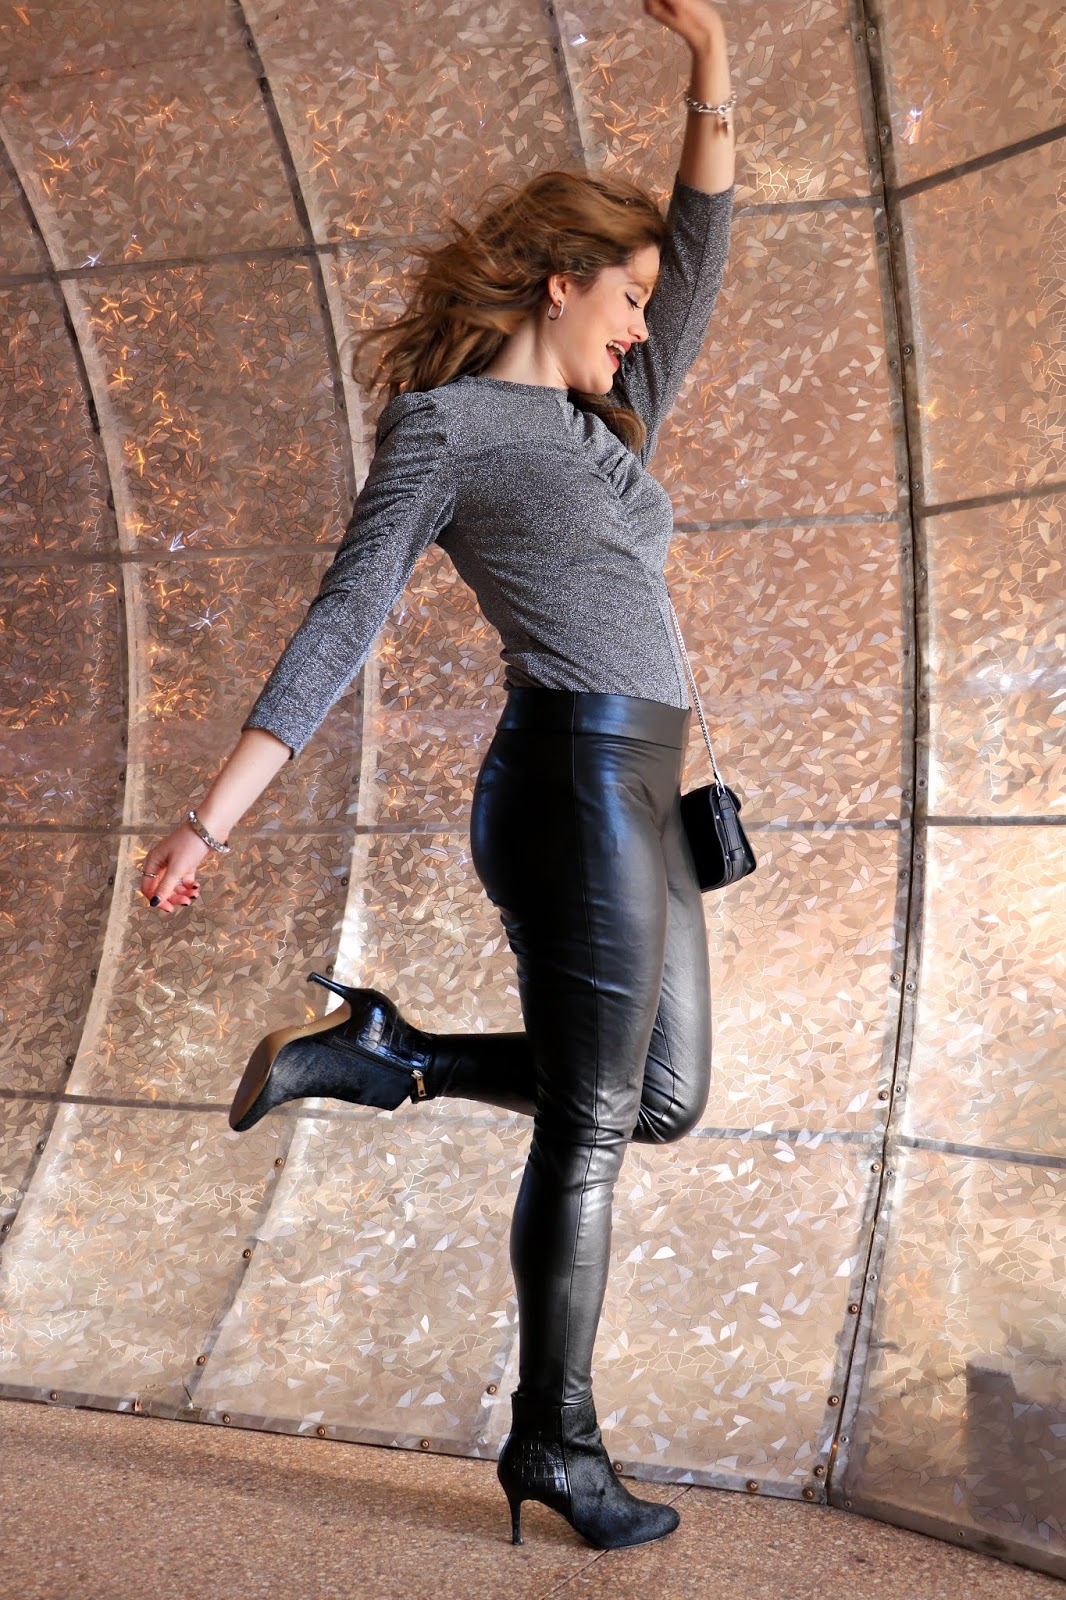 Nyc fashion blogger Kathleen Harper's NYE outfit of a sparkle top and leather leggings.